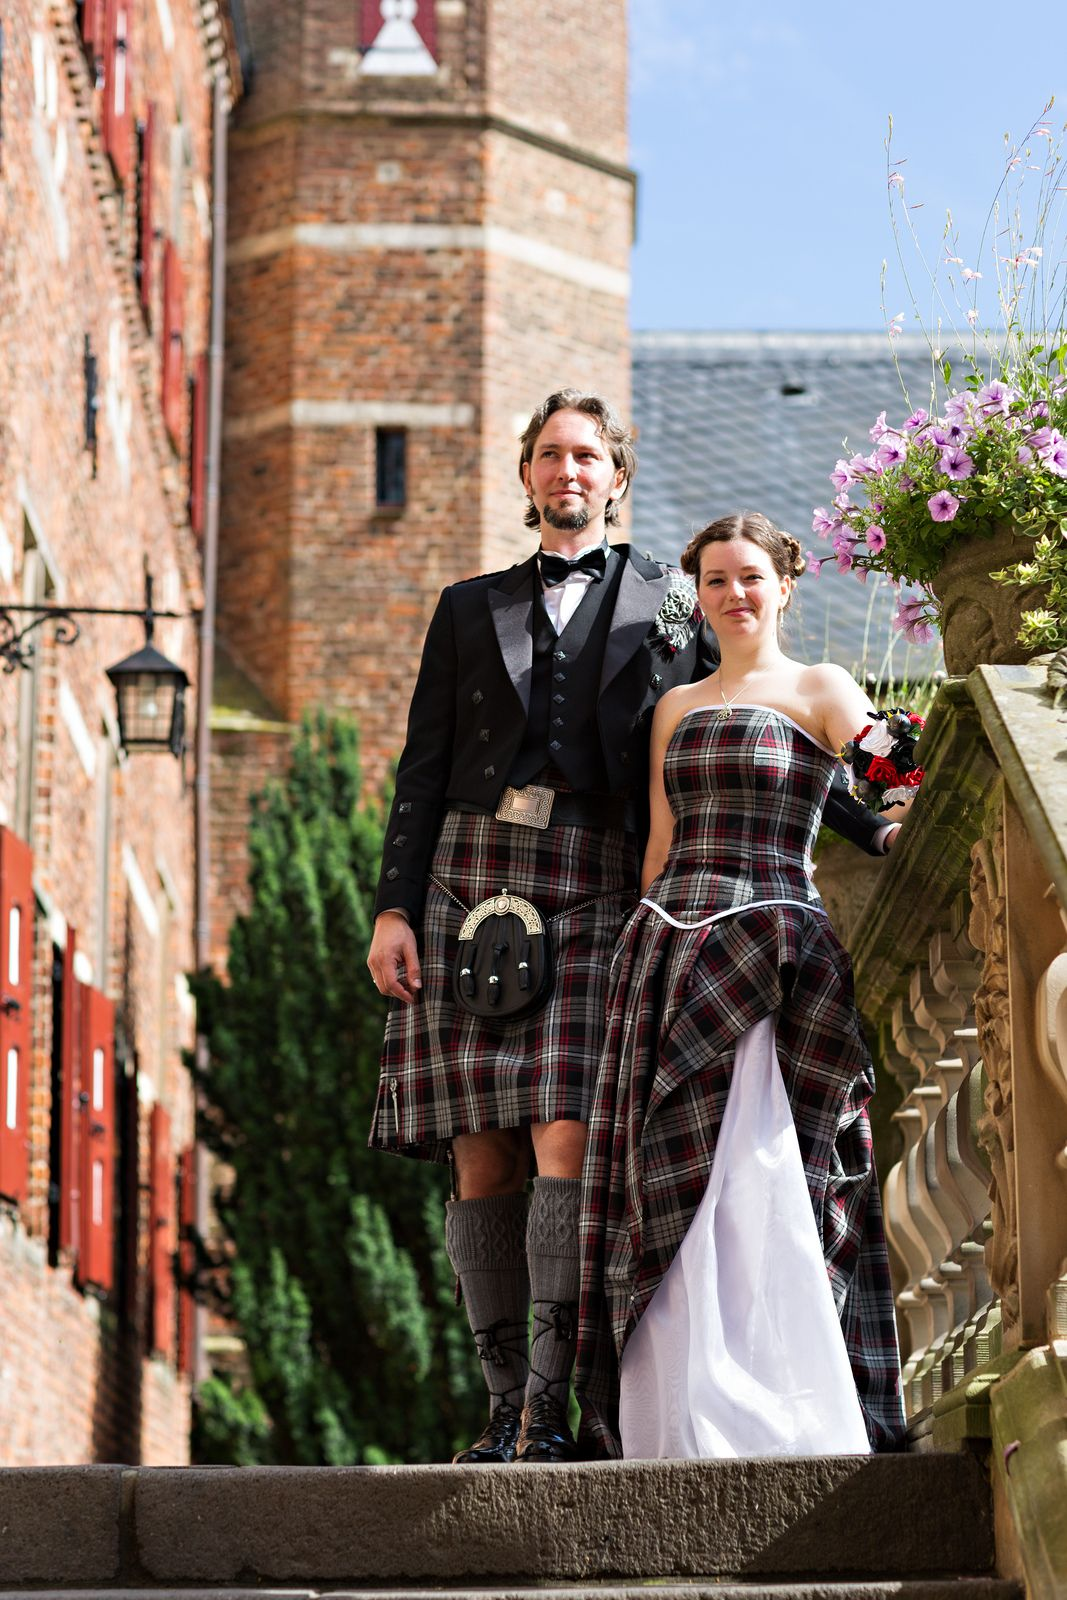 Noor & Alex's Scottish-inspired Handfasting In The